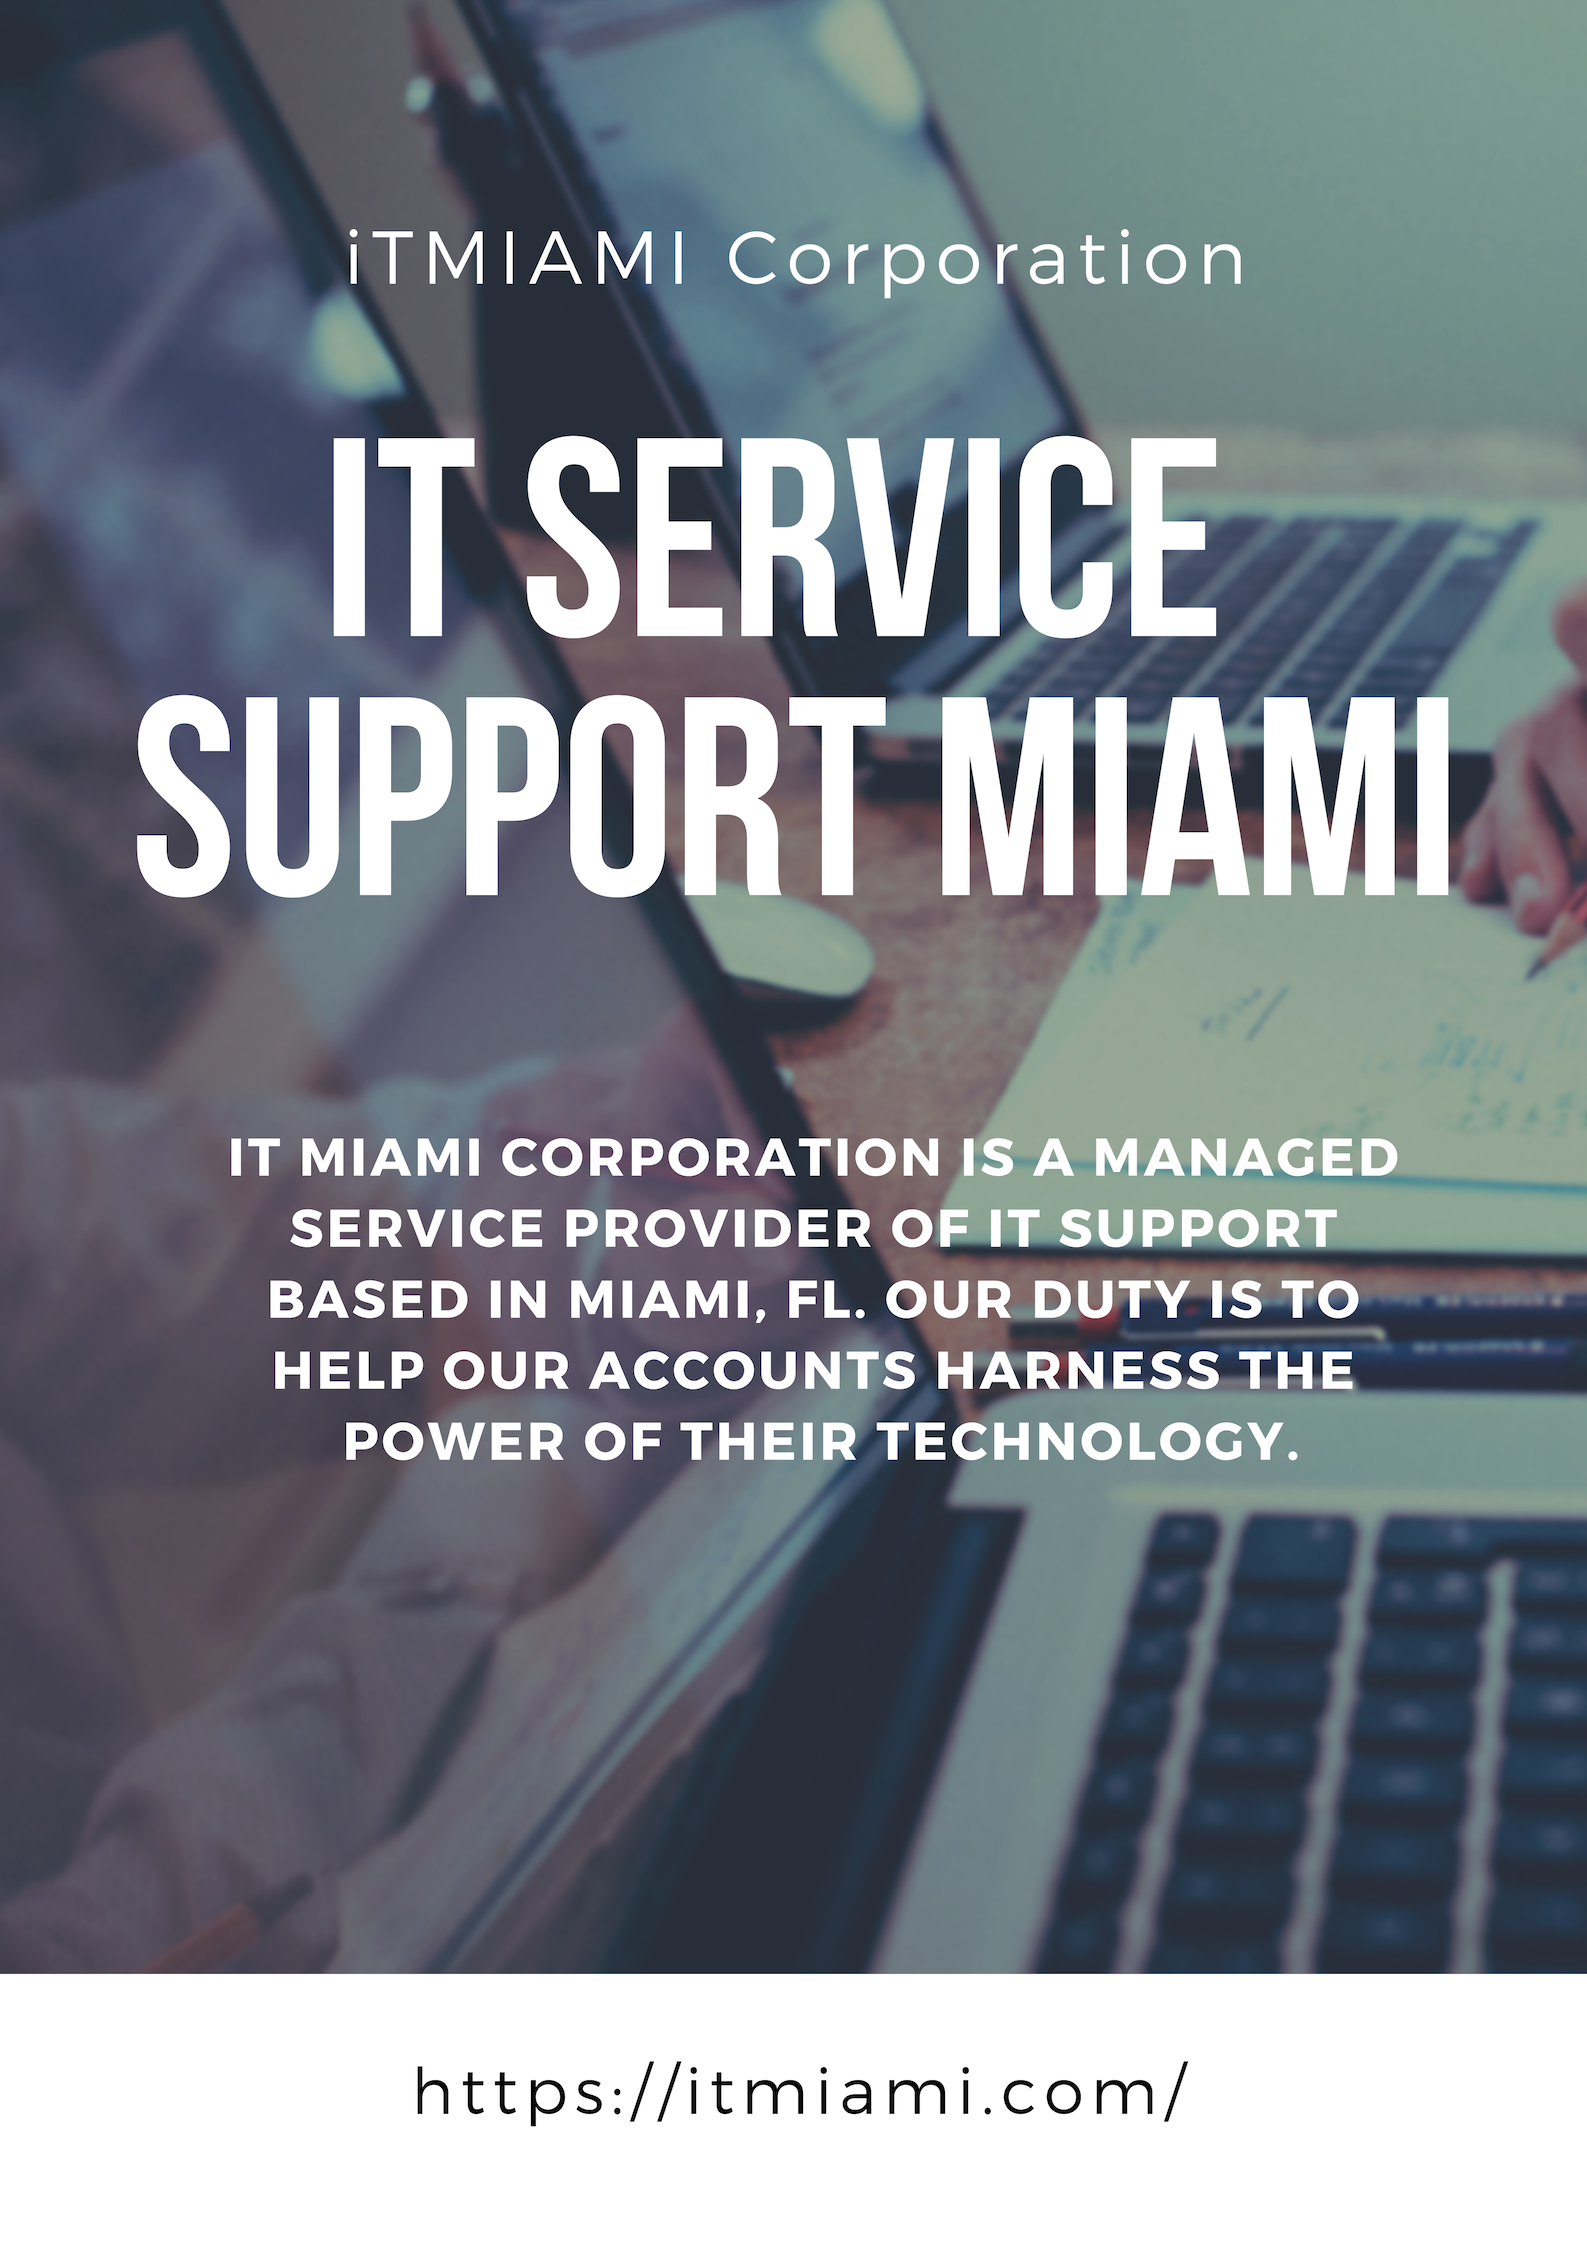 IT Support Miami